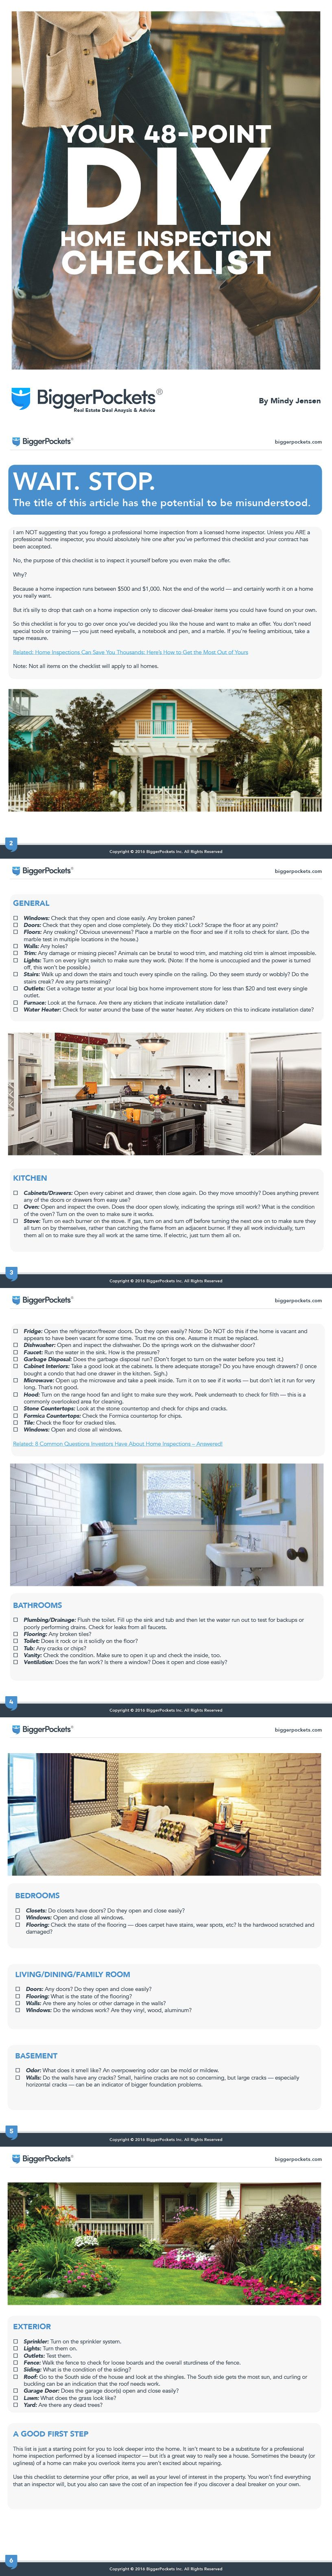 Diy Home Inspection Checklist How To Inspect Your New House Real Estate Home Inspection First Time Home Buyers